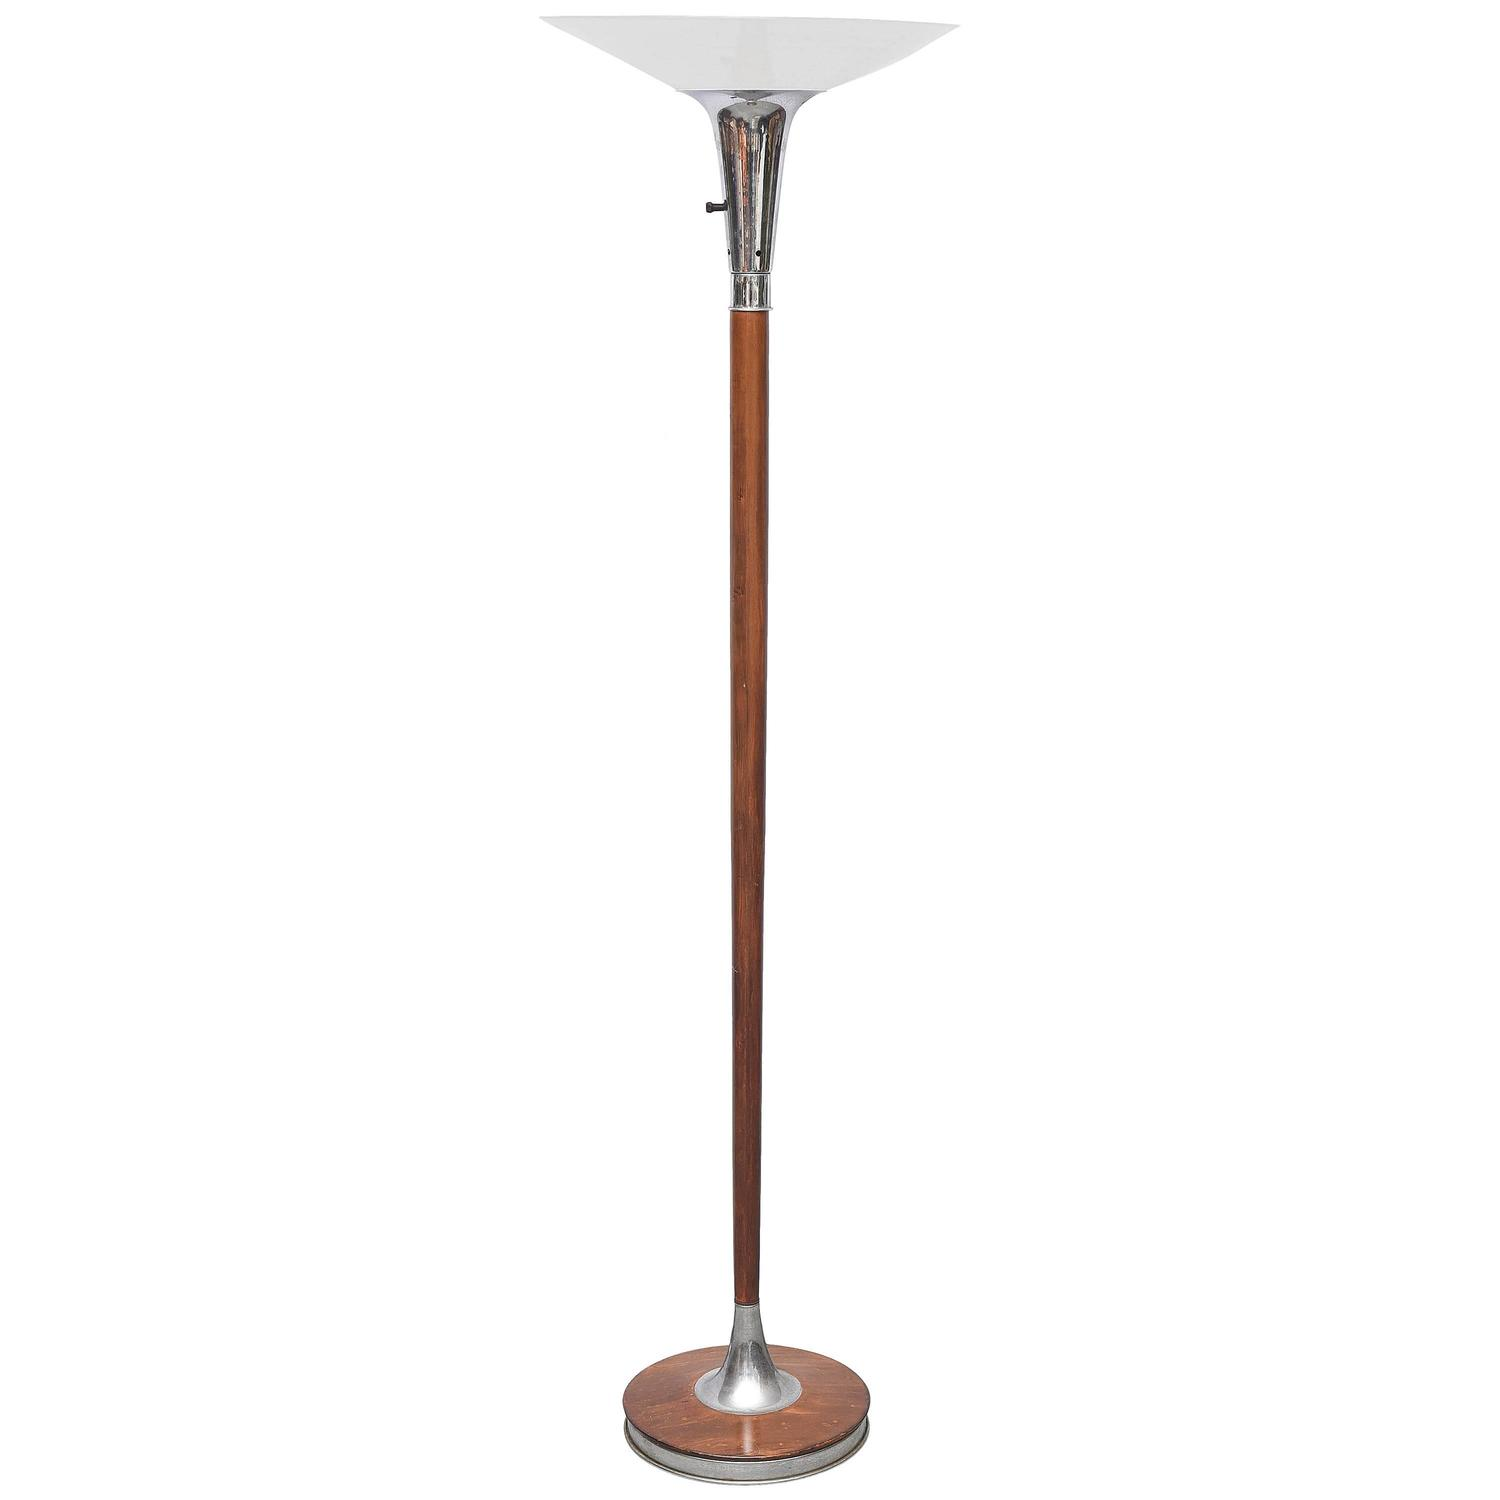 Lovely wood chrome and glass floor lamp or torchiere usa for 1940s torchiere floor lamp